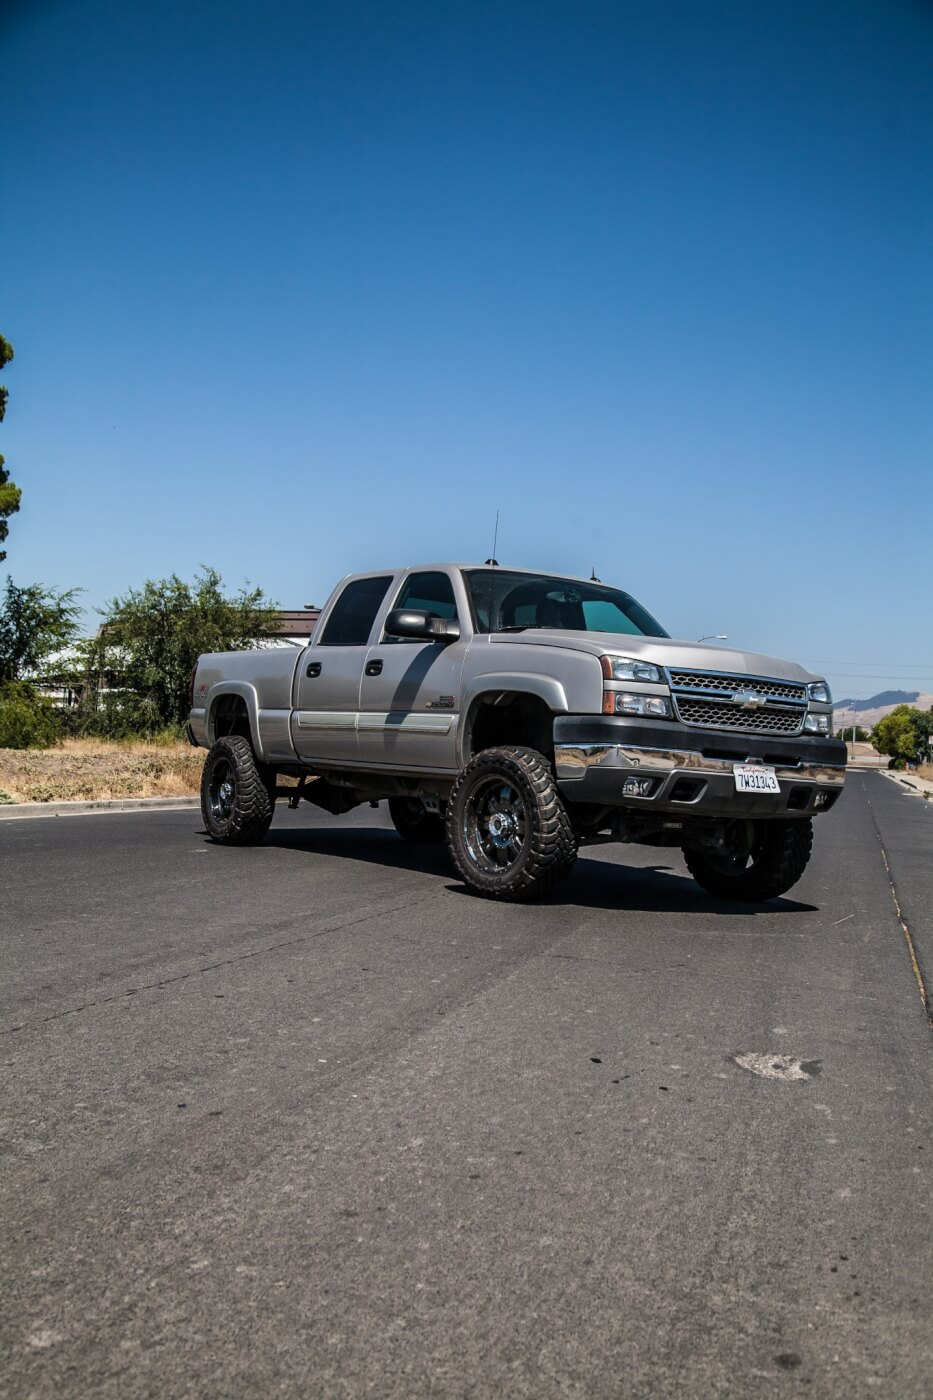 Dont Break The Bank Affordable Duramax Fueling Upgrades 94 Chevy Truck Fuel Filter Matt Kutcheras Lly Equipped 2005 Silverado 2500 Ltz Is Fully Loaded Has Ridiculously Low